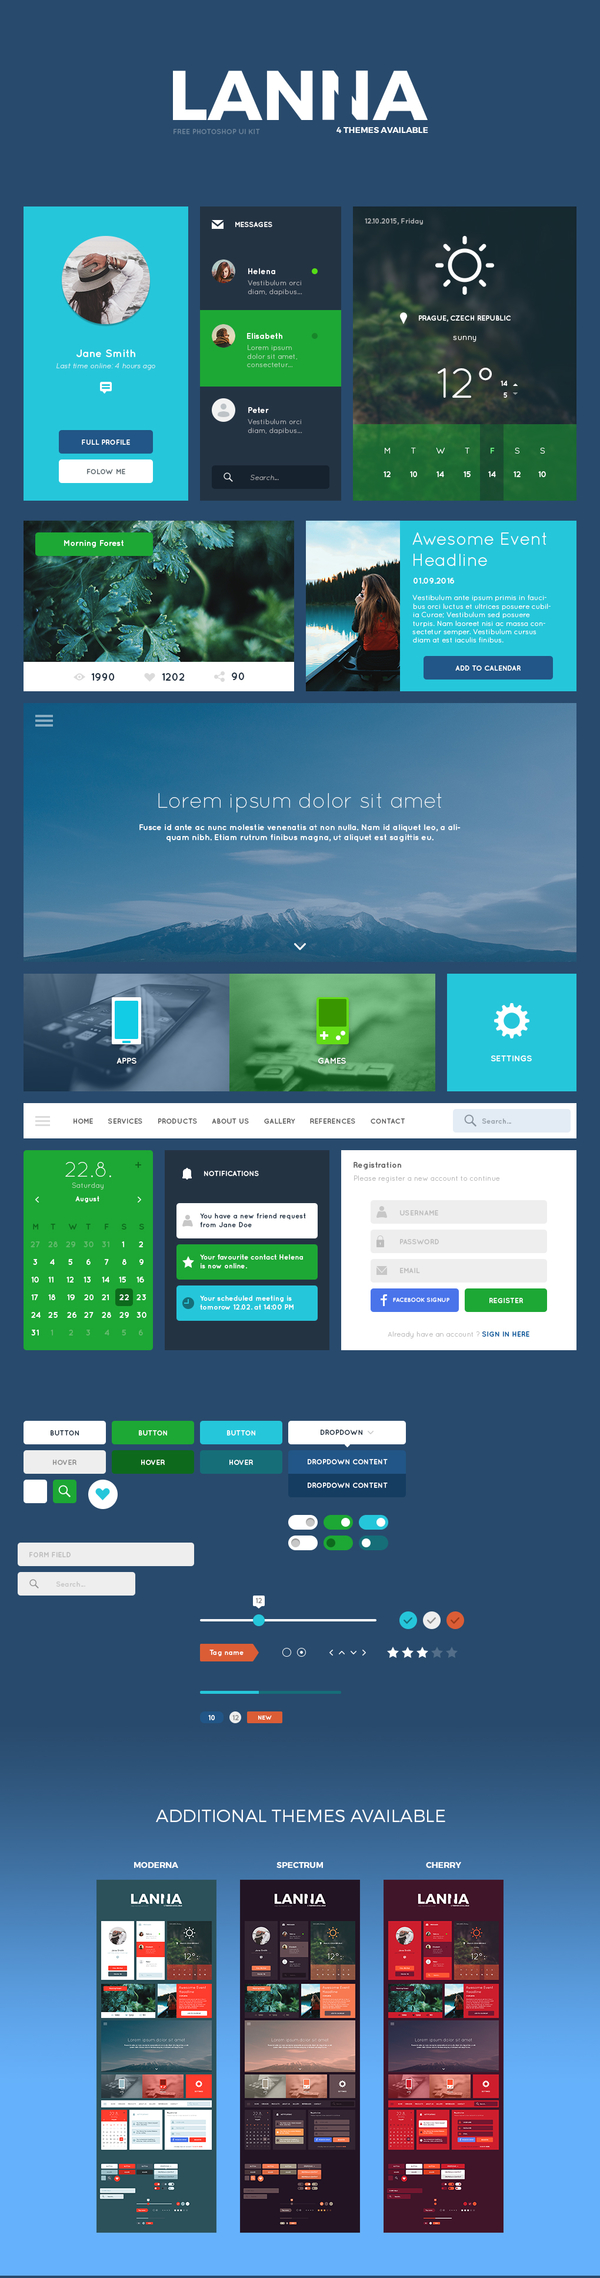 lanna-free-photoshop-ui-kit-2